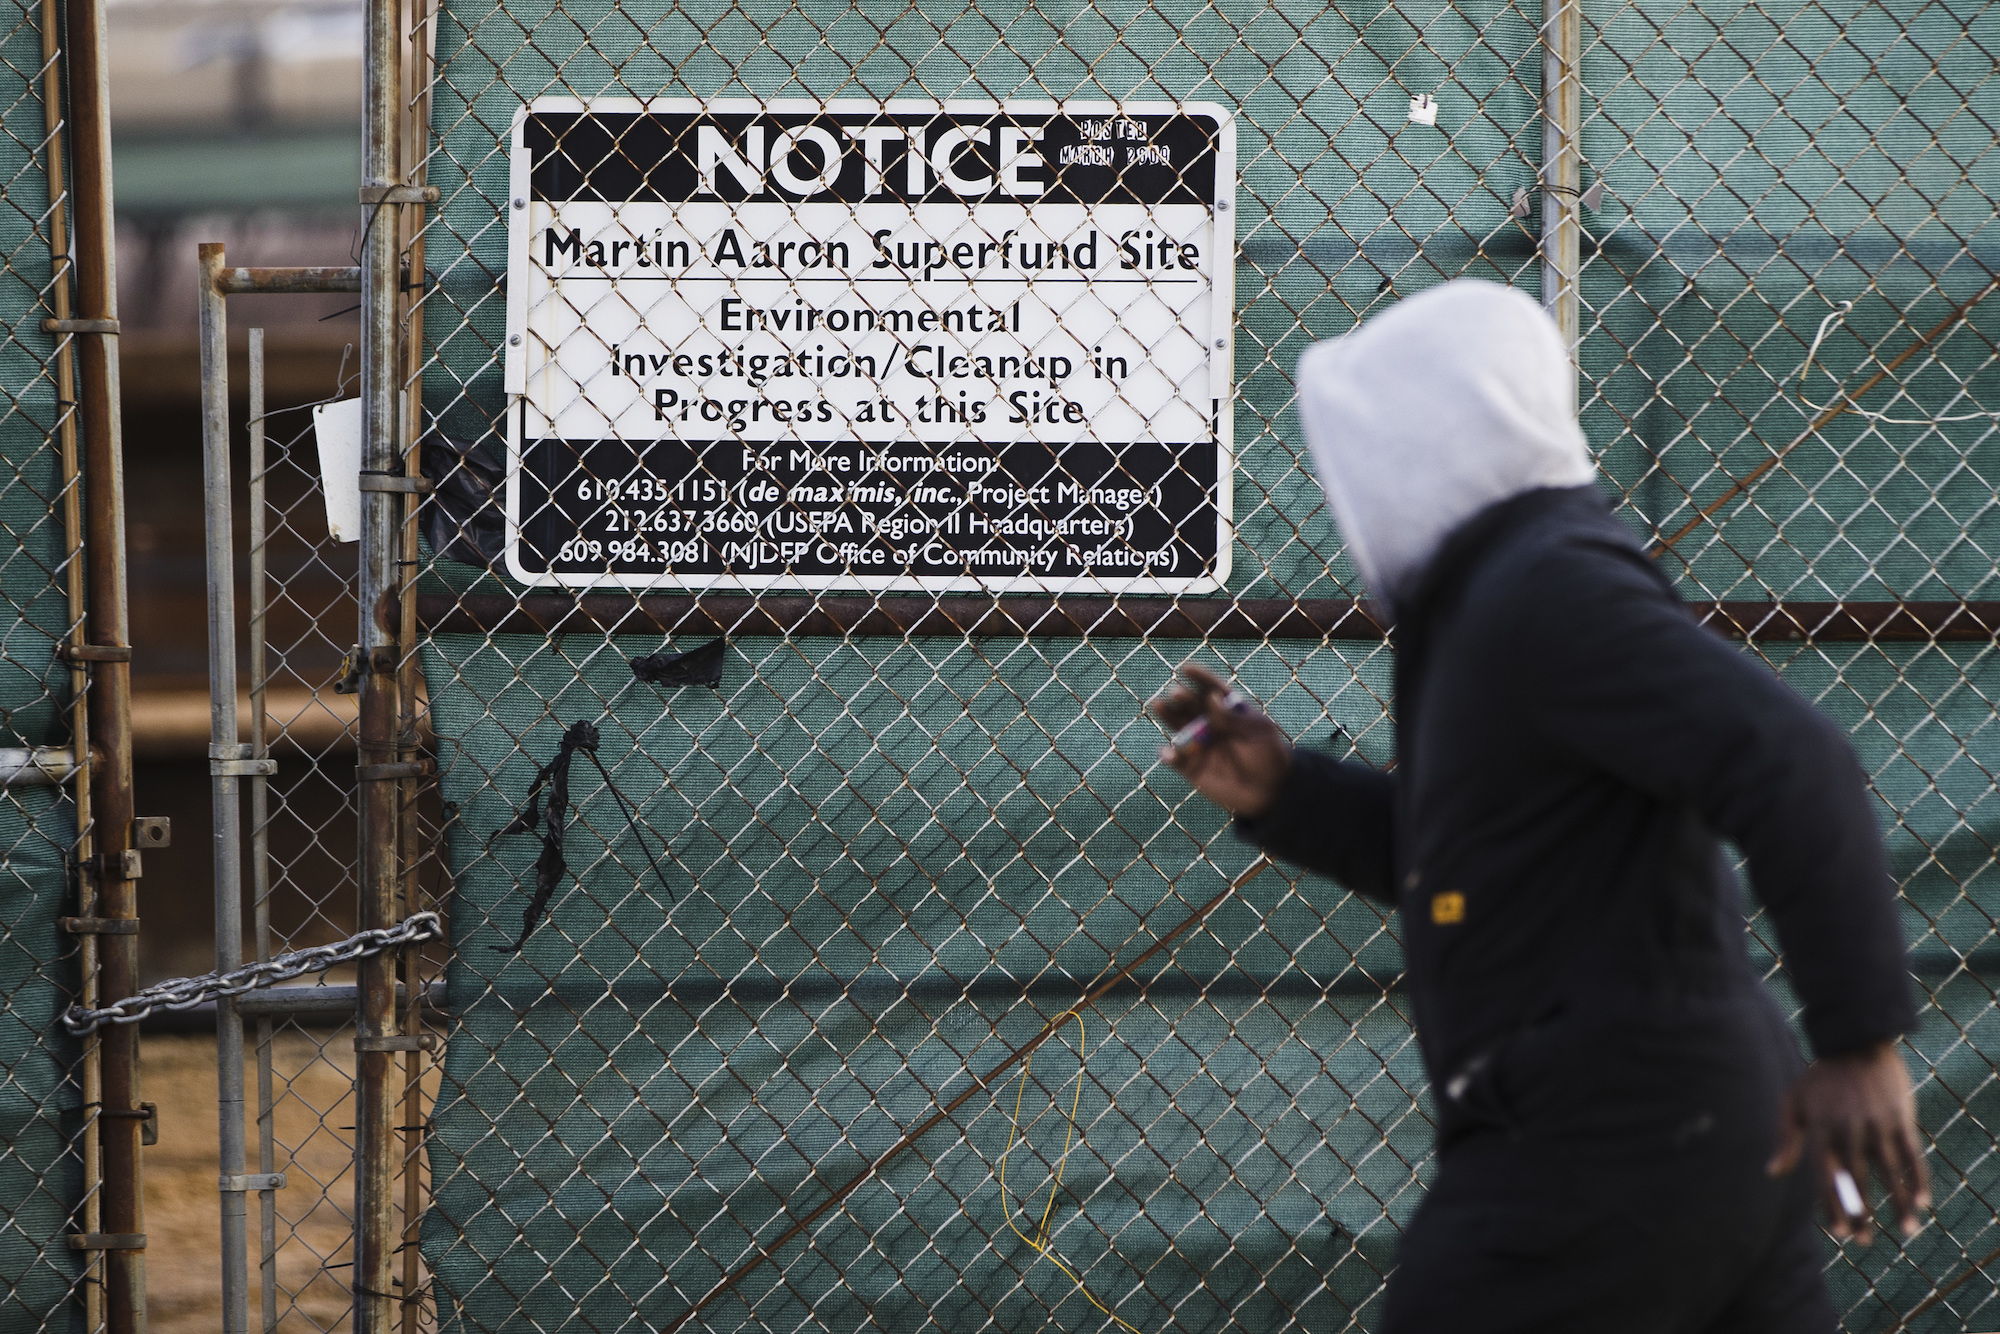 A photo of a man waking past a sign for the Martin Aaron Inc. Superfund site in Camden, New Jersey